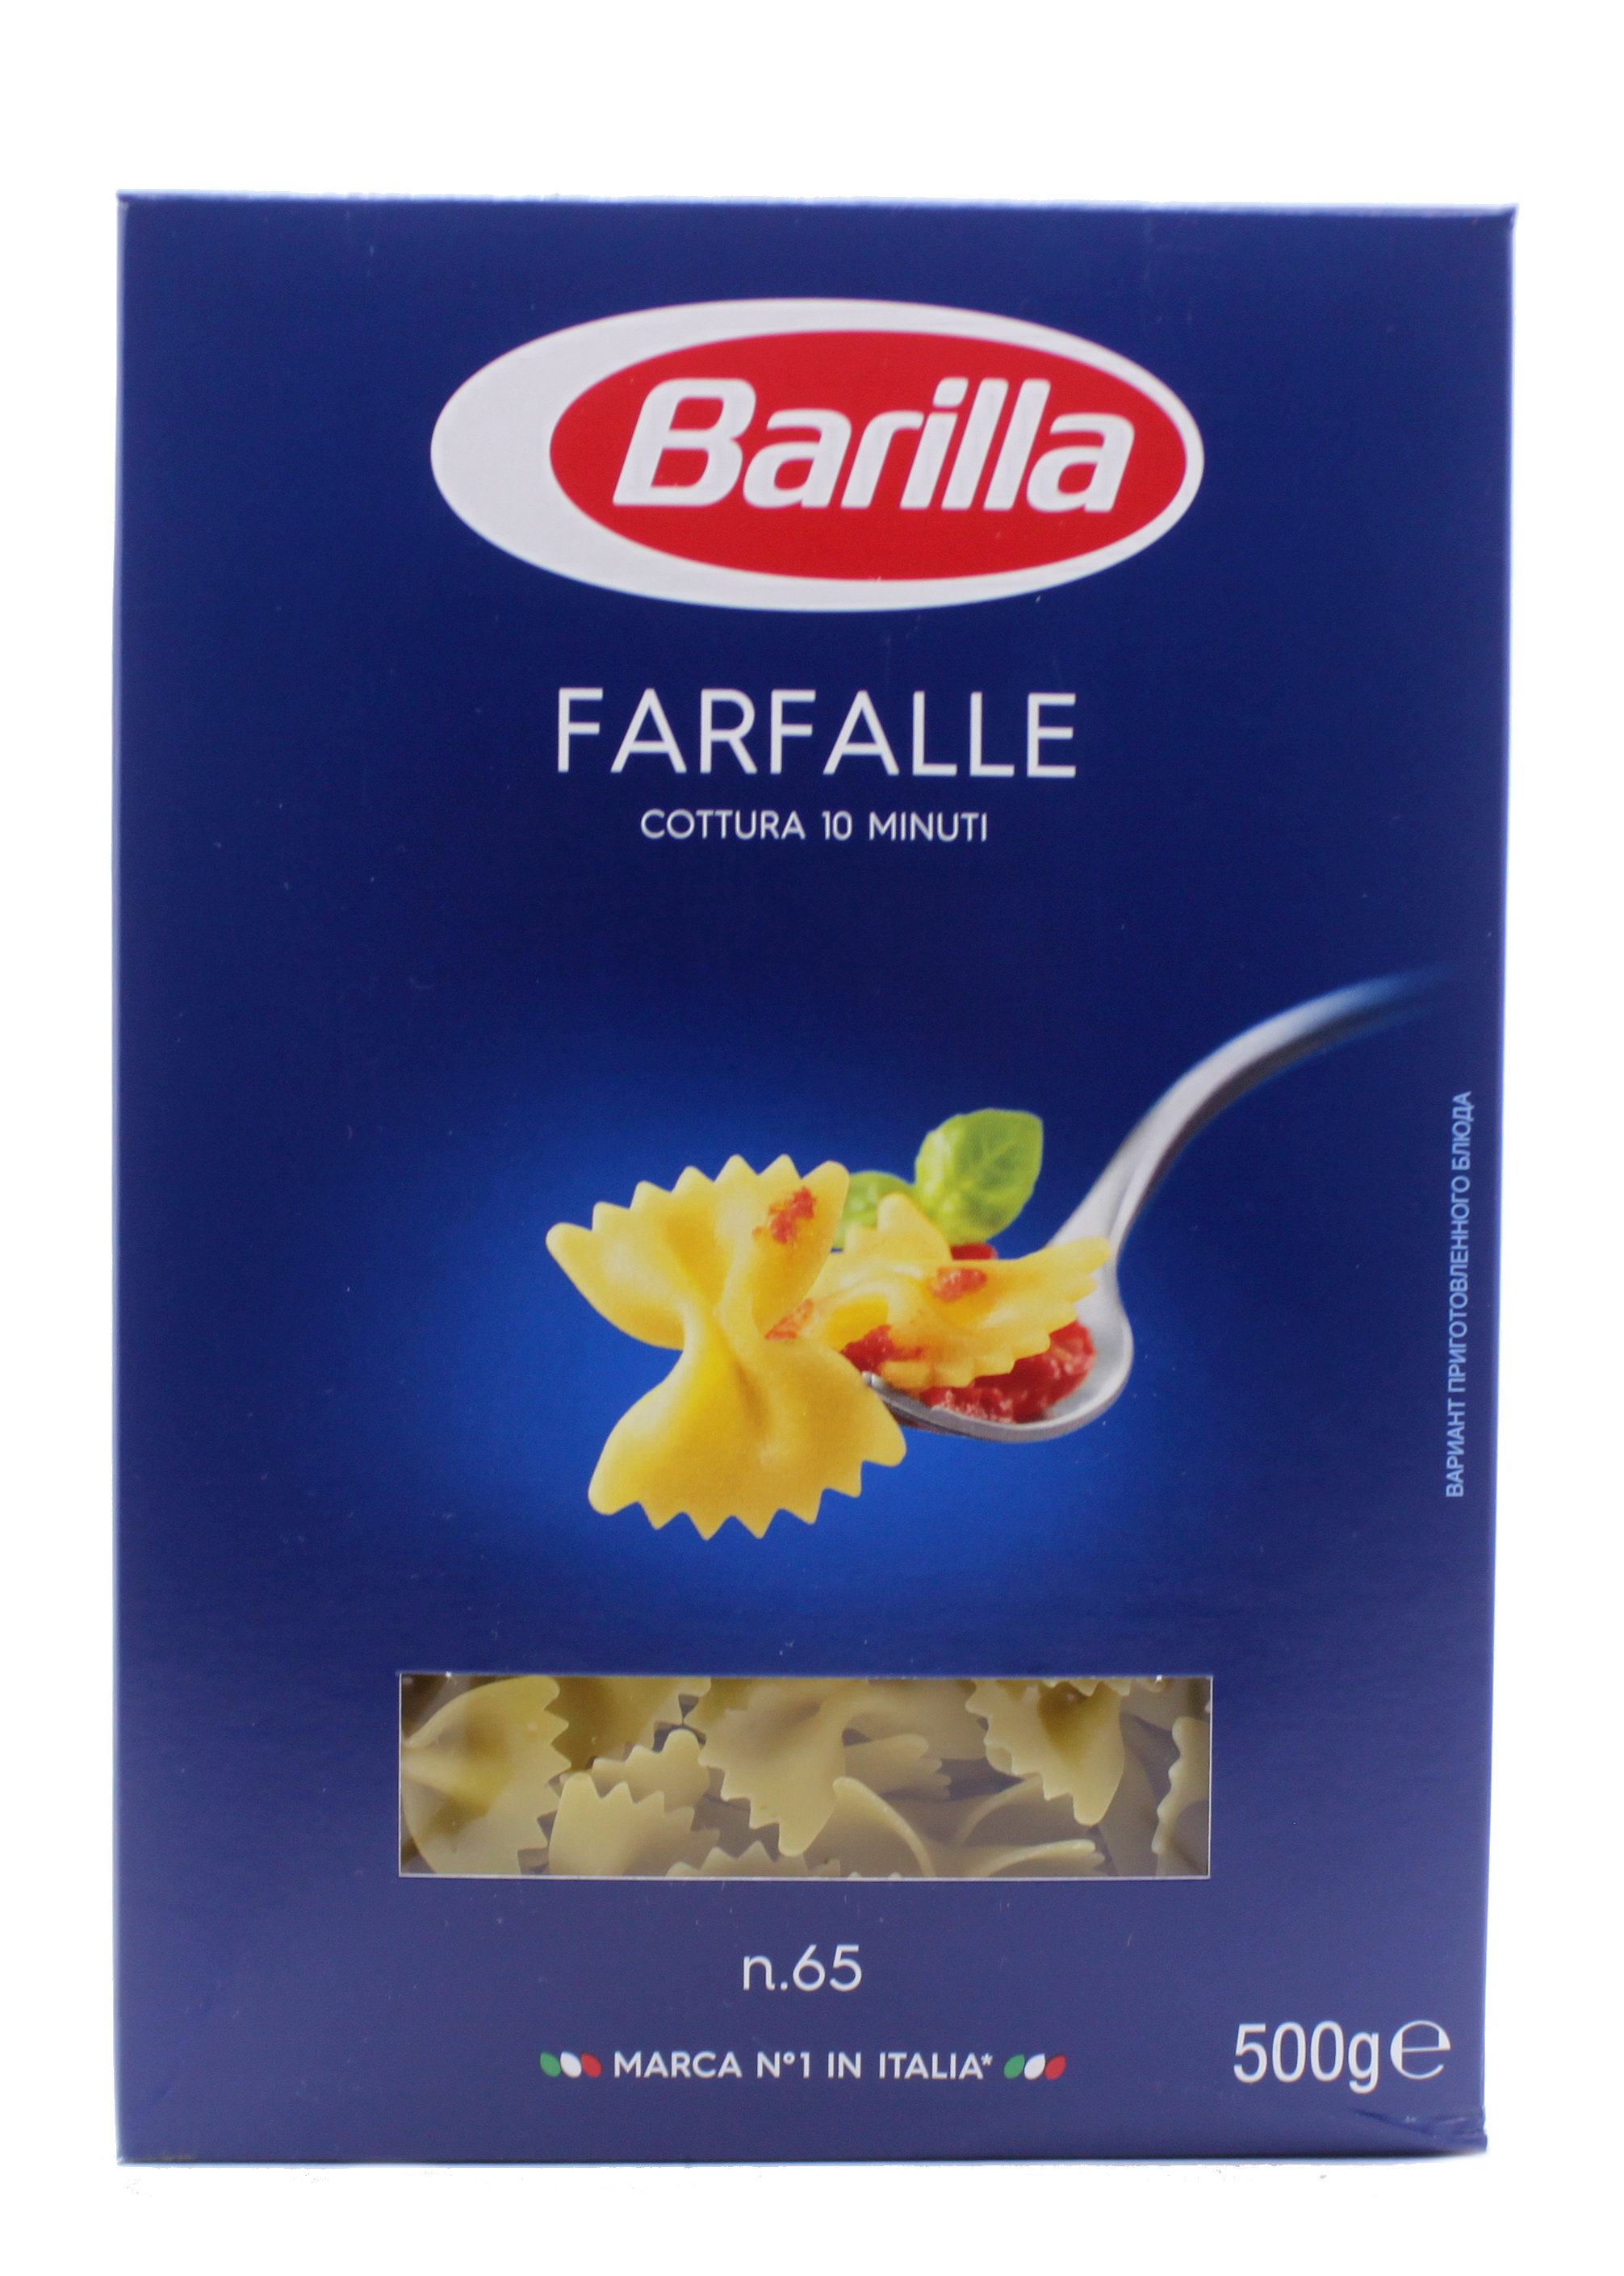 barilla case project Barilla executive summary barilla spa is a world largest past manufacturer has experienced a phenomenal growth the company had pasta share of 35% in italy and 22% in europe, plus 29% in italian bakery product market (p 2 case).